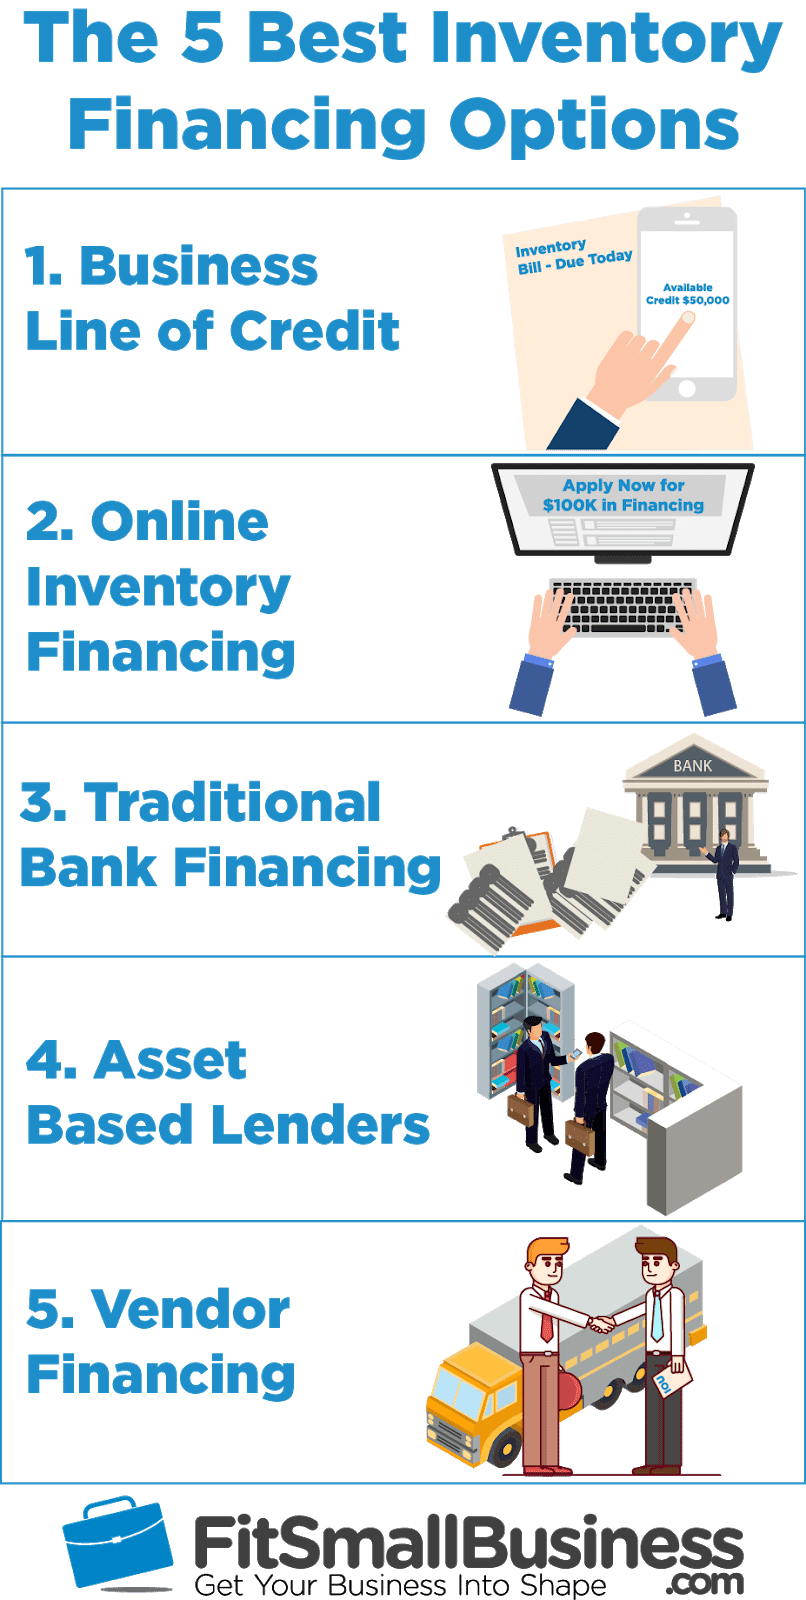 infographic for 5 best inventory financing options